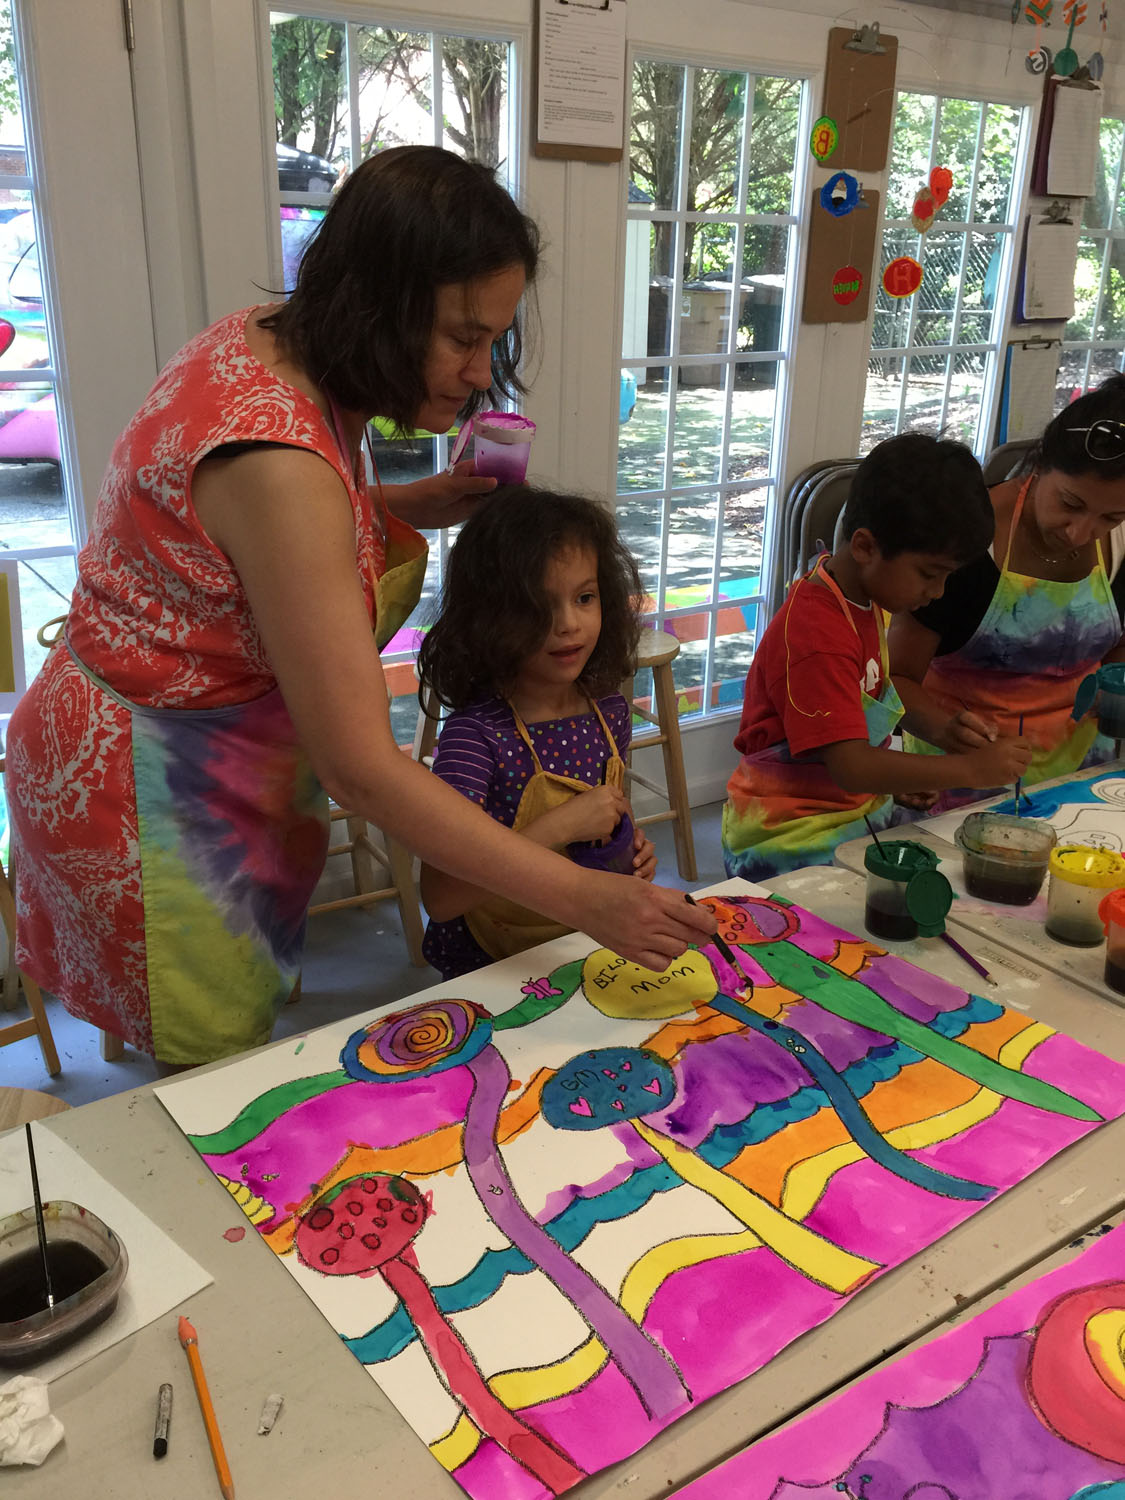 adults-and-children-making-art-together-at-artbytjm-tracey-marshall-greensboro-artist-studio-IMG_0037.jpg